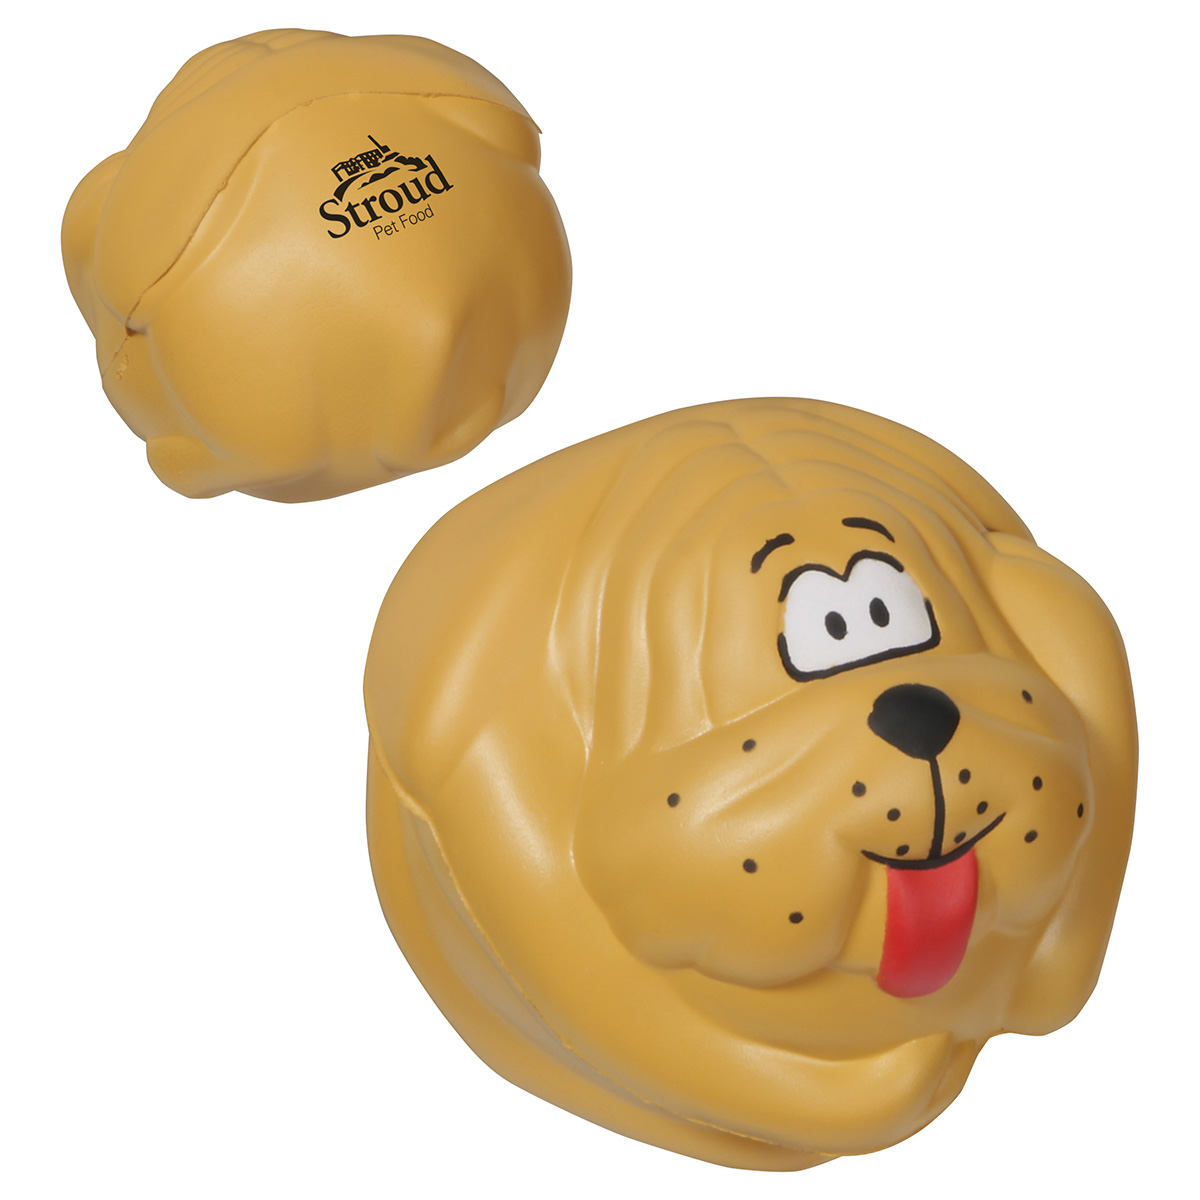 Dog Ball Stress Reliever, LPE-DB05 - 1 Colour Imprint